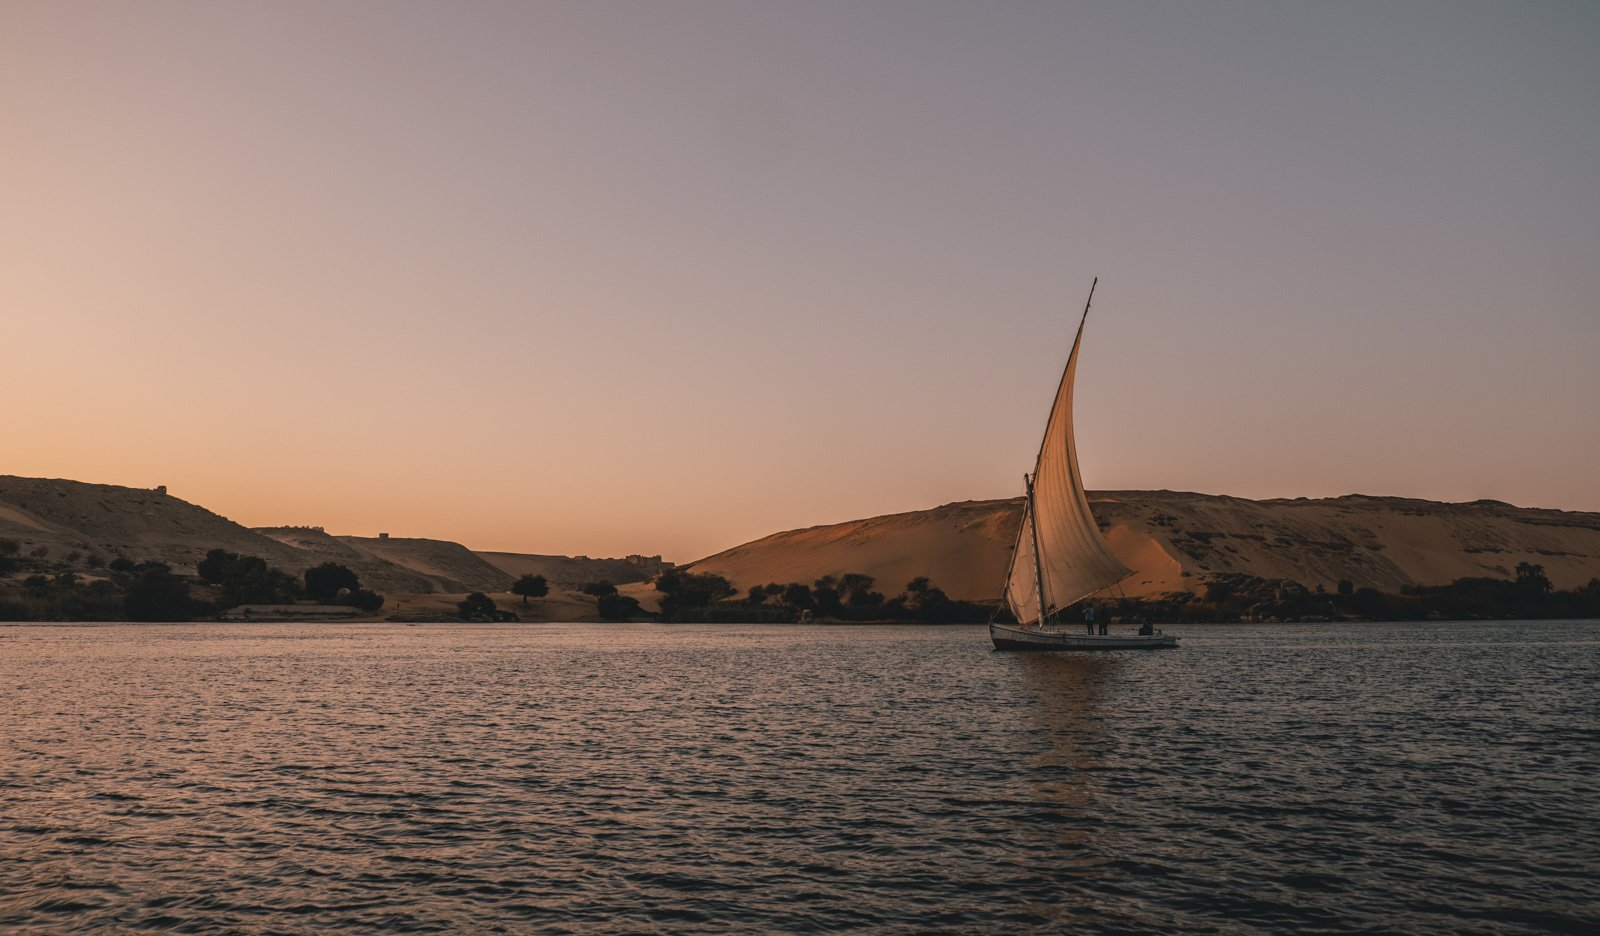 A small local sailboat on the Nile in Egypt